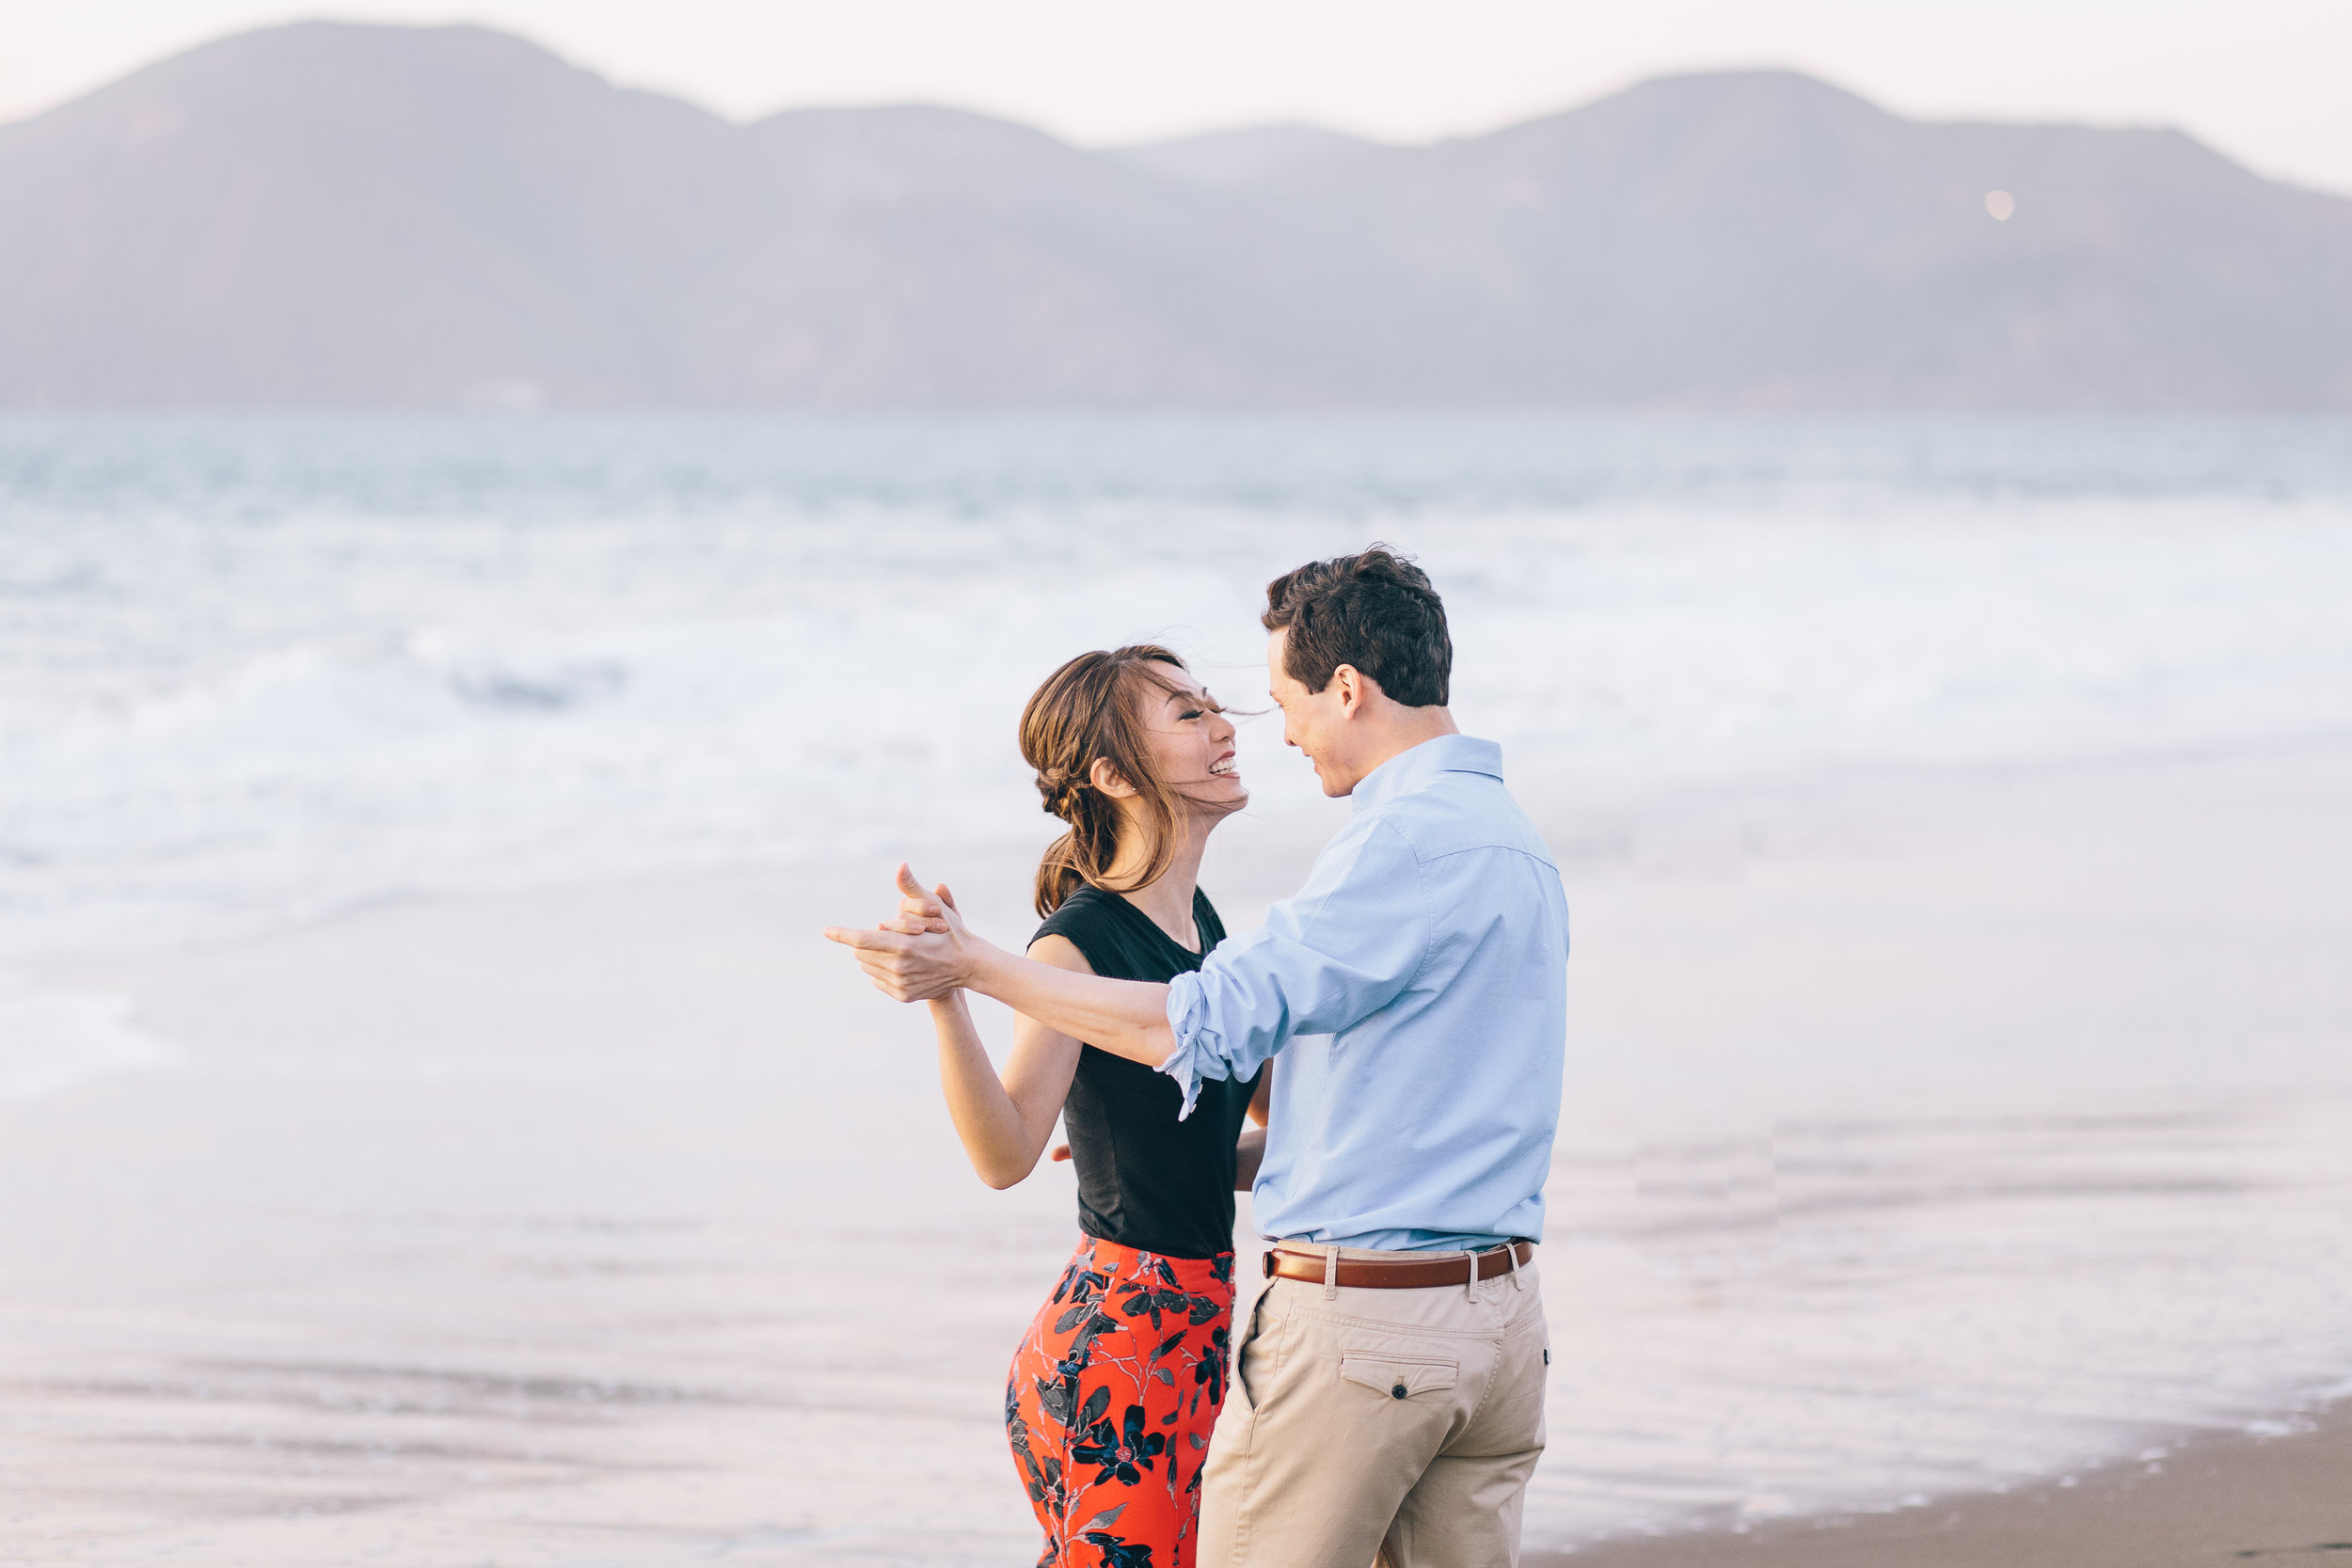 Best Engagement Photo Locations in San Francisco - Baker Beach Engagement Photos by JBJ Pictures (4).jpg